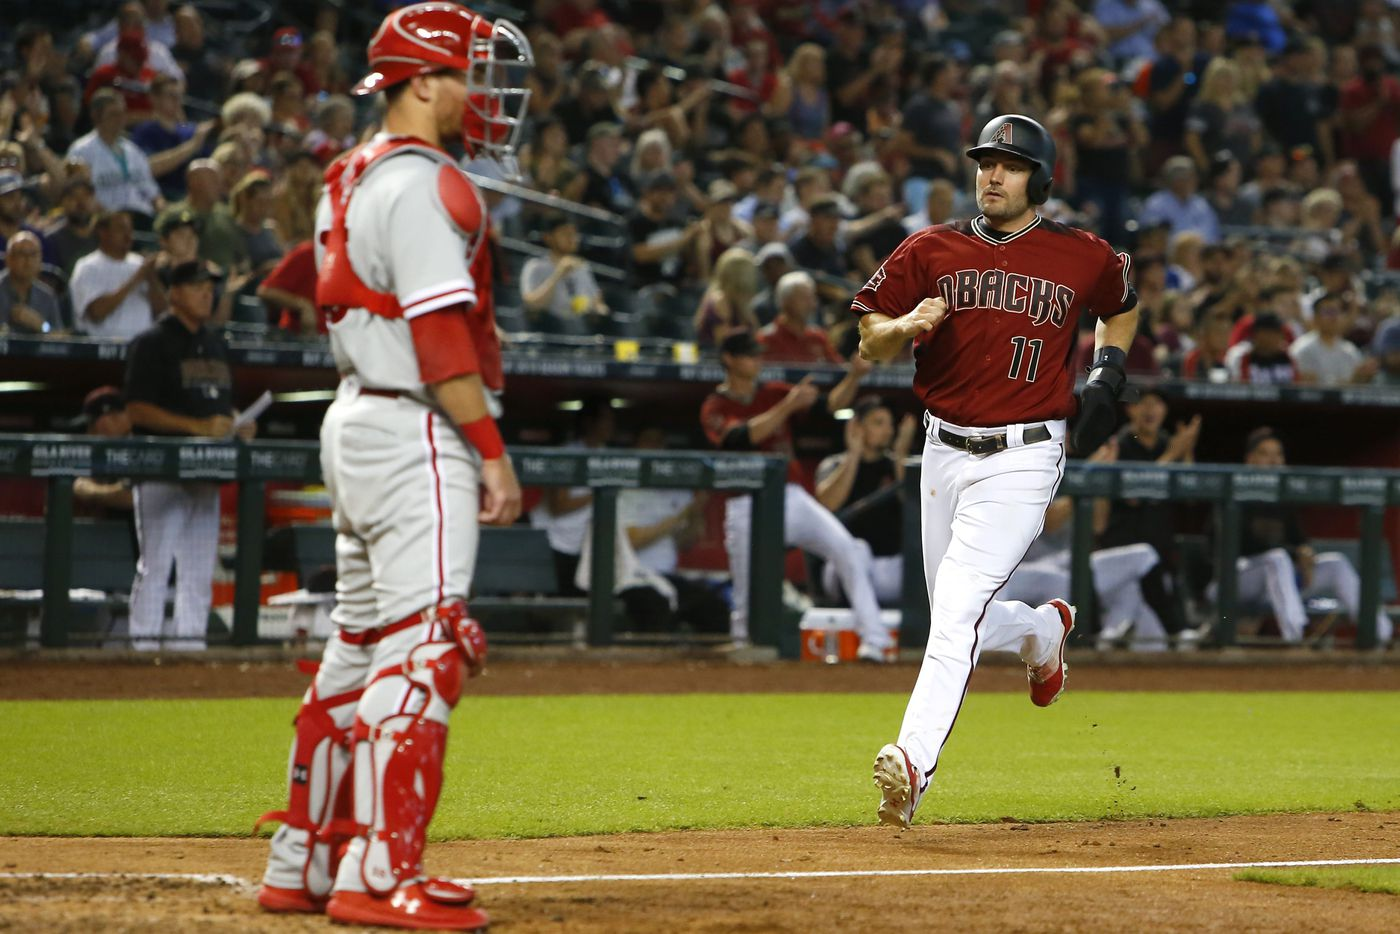 Vince Velasquez roughed up by Diamondbacks, as Phillies lose series in the desert